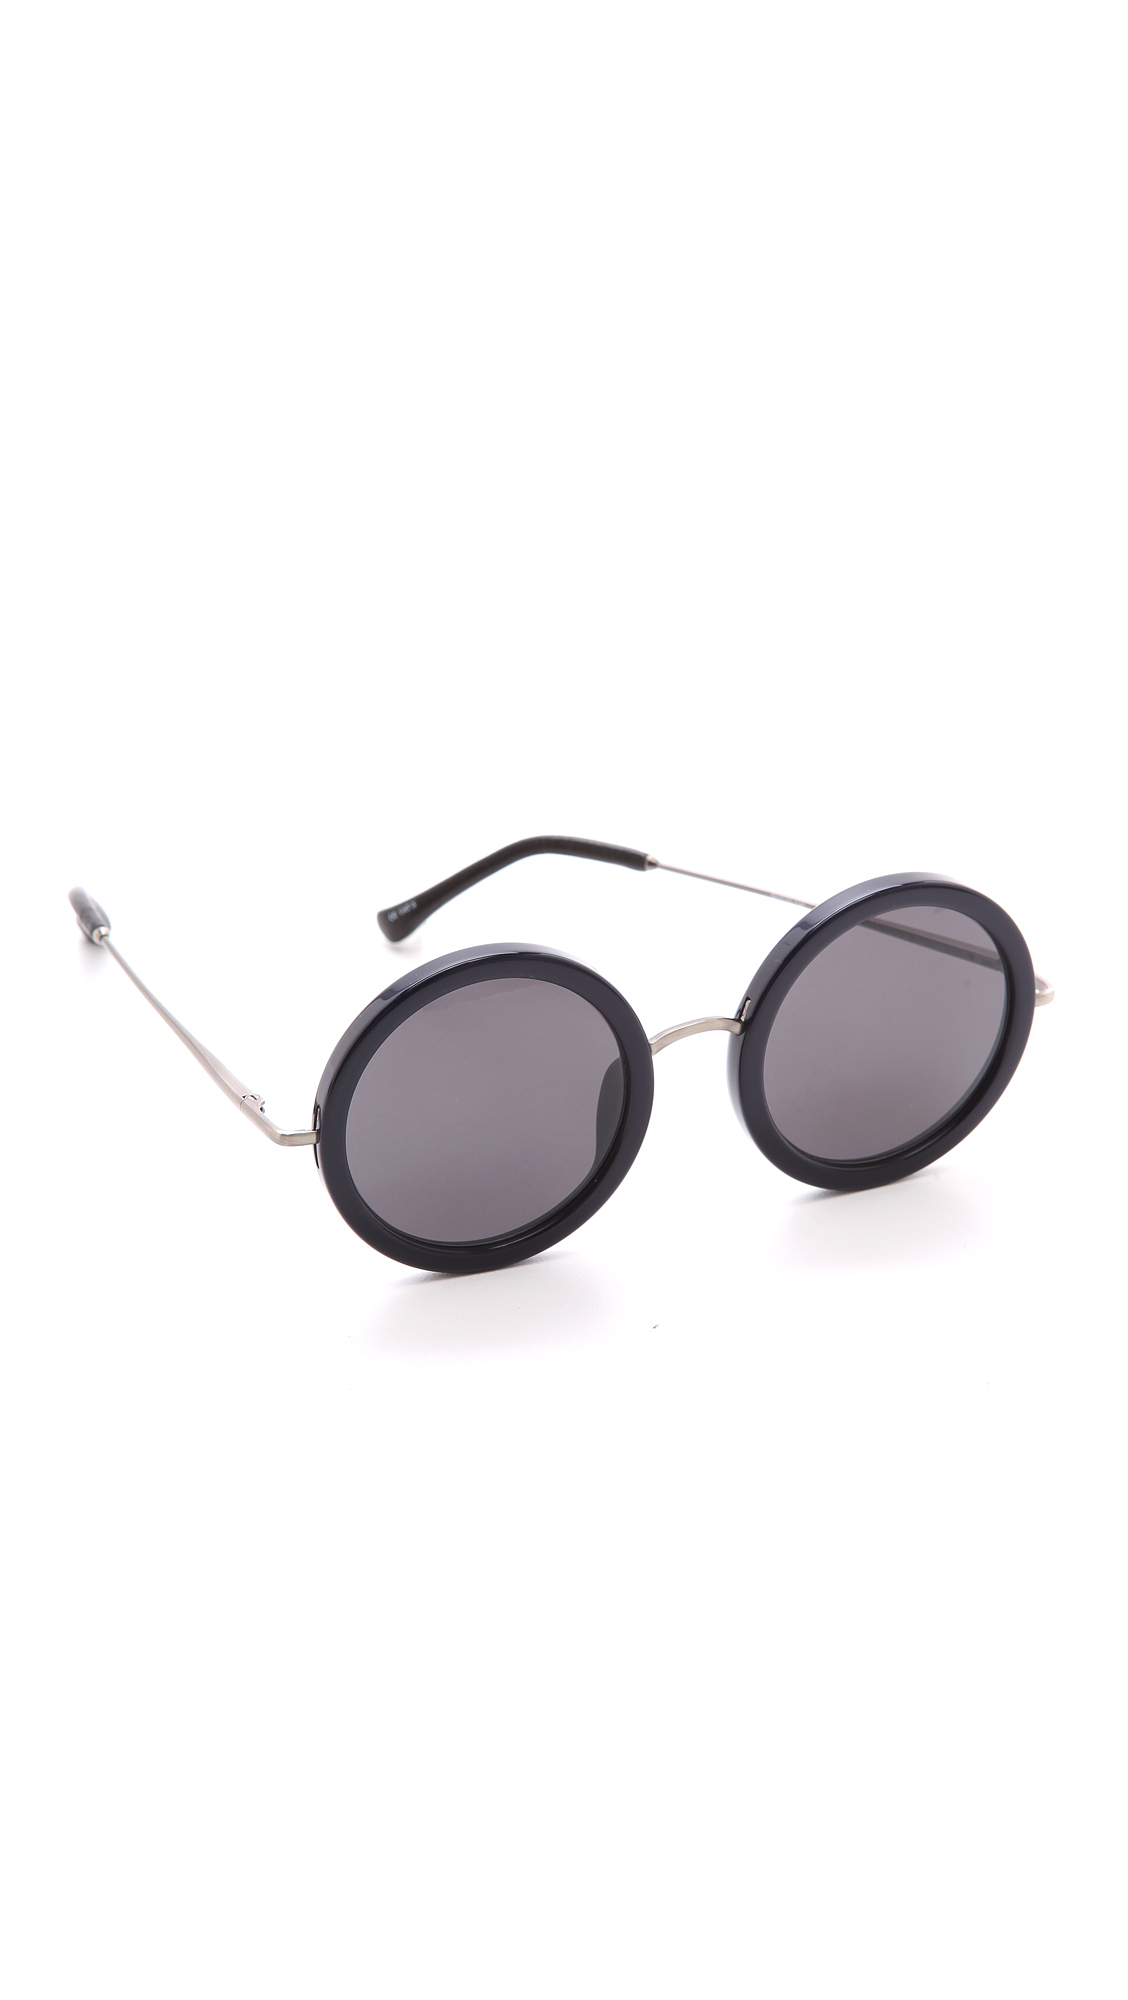 The Row Round Sunglasses - Molasses/Brown in Navy/Blue (Blue)